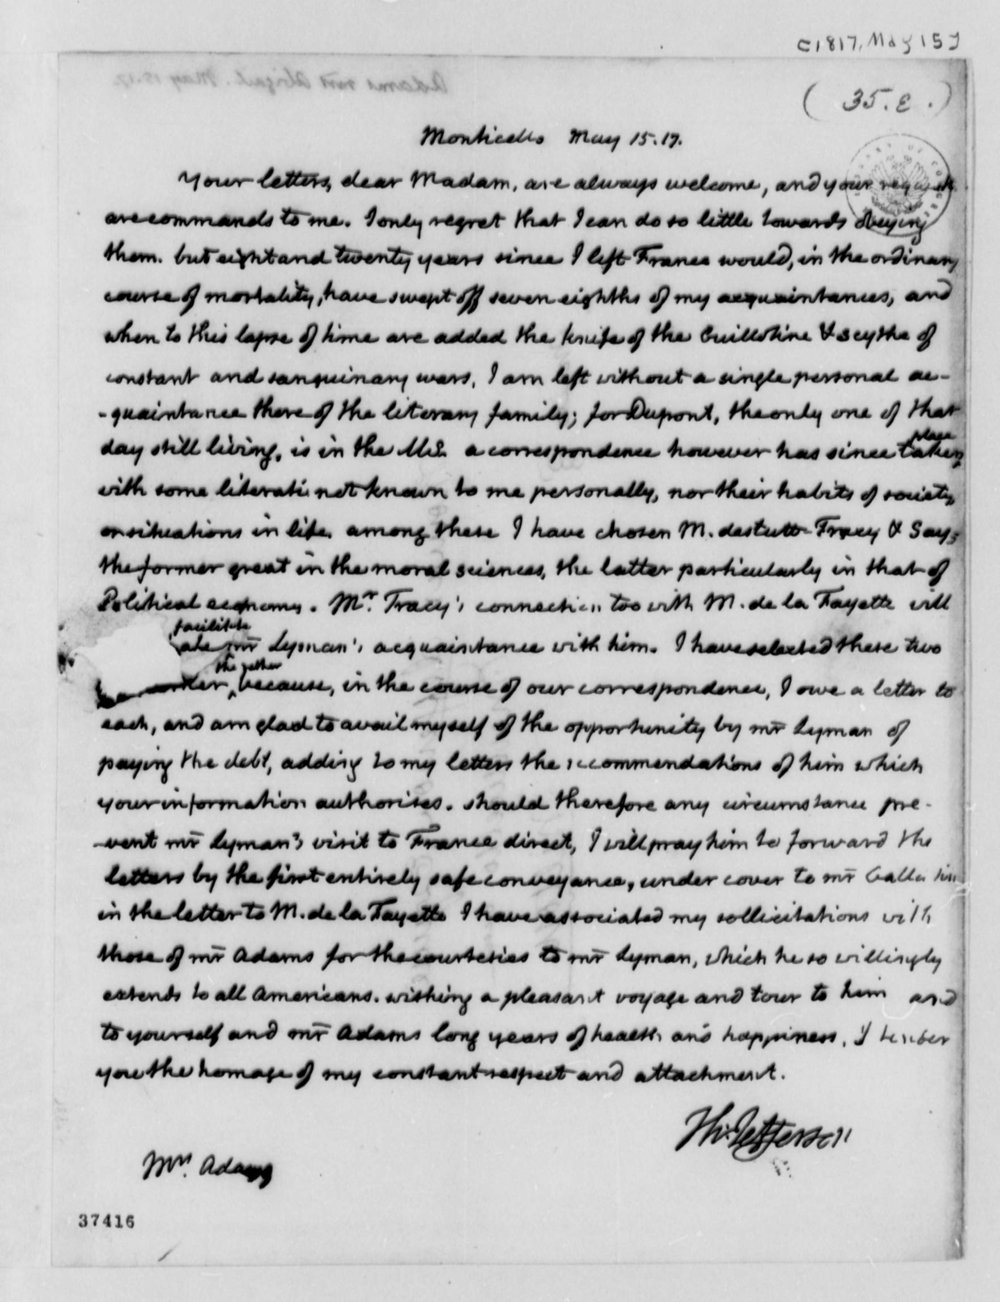 A letter written to Thomas Jefferson from Abigail Adams.